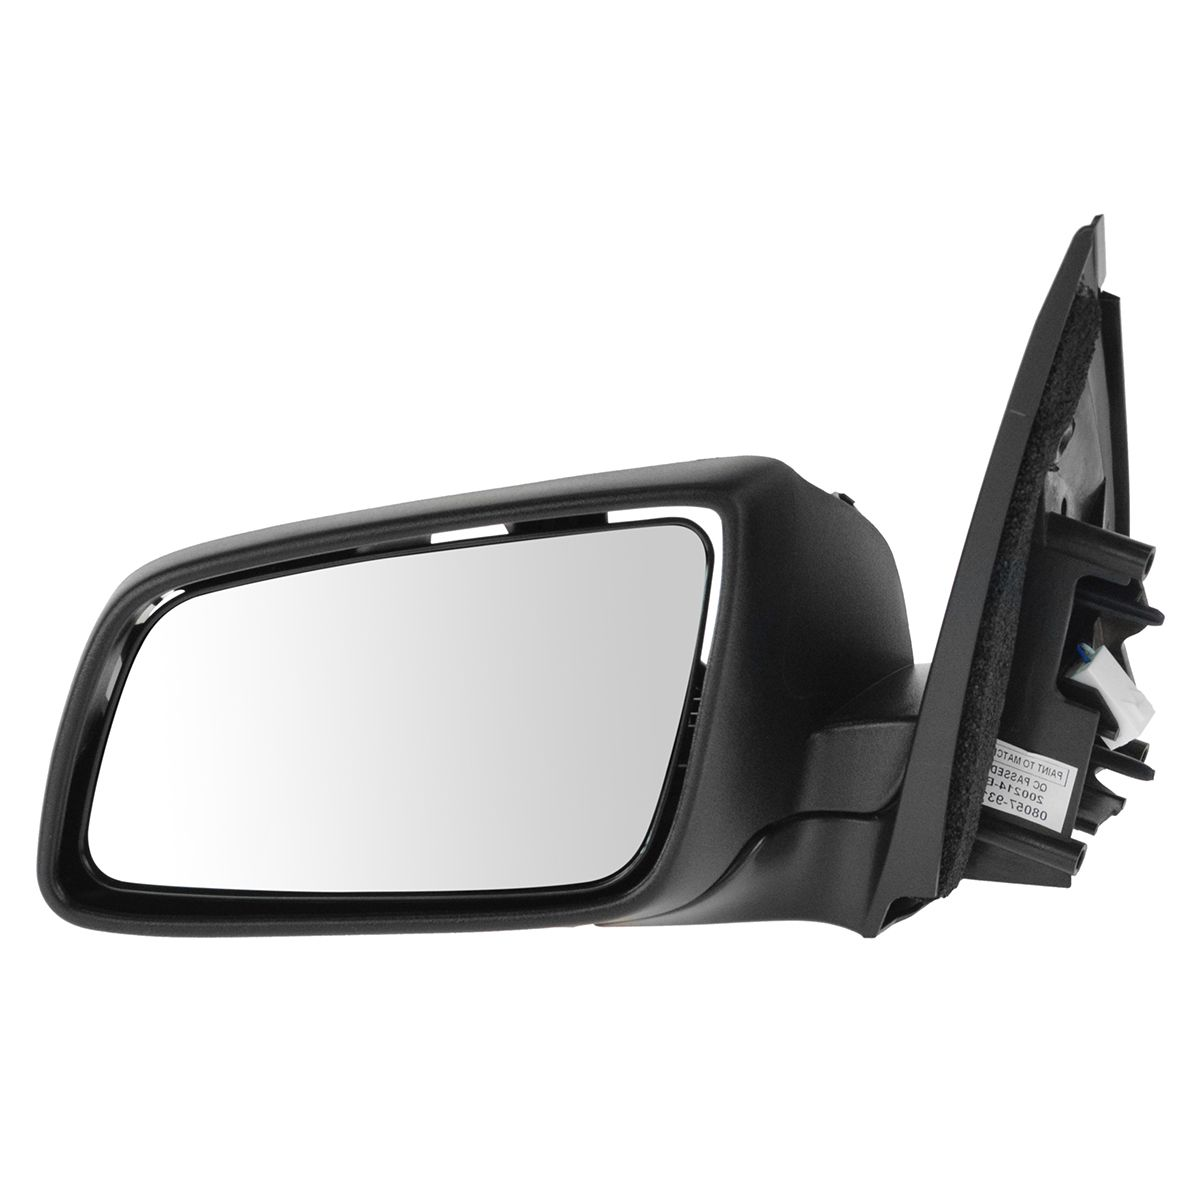 New Drivers Power Side View Mirror Glass Housing Chevrolet Caprice Pontiac G8